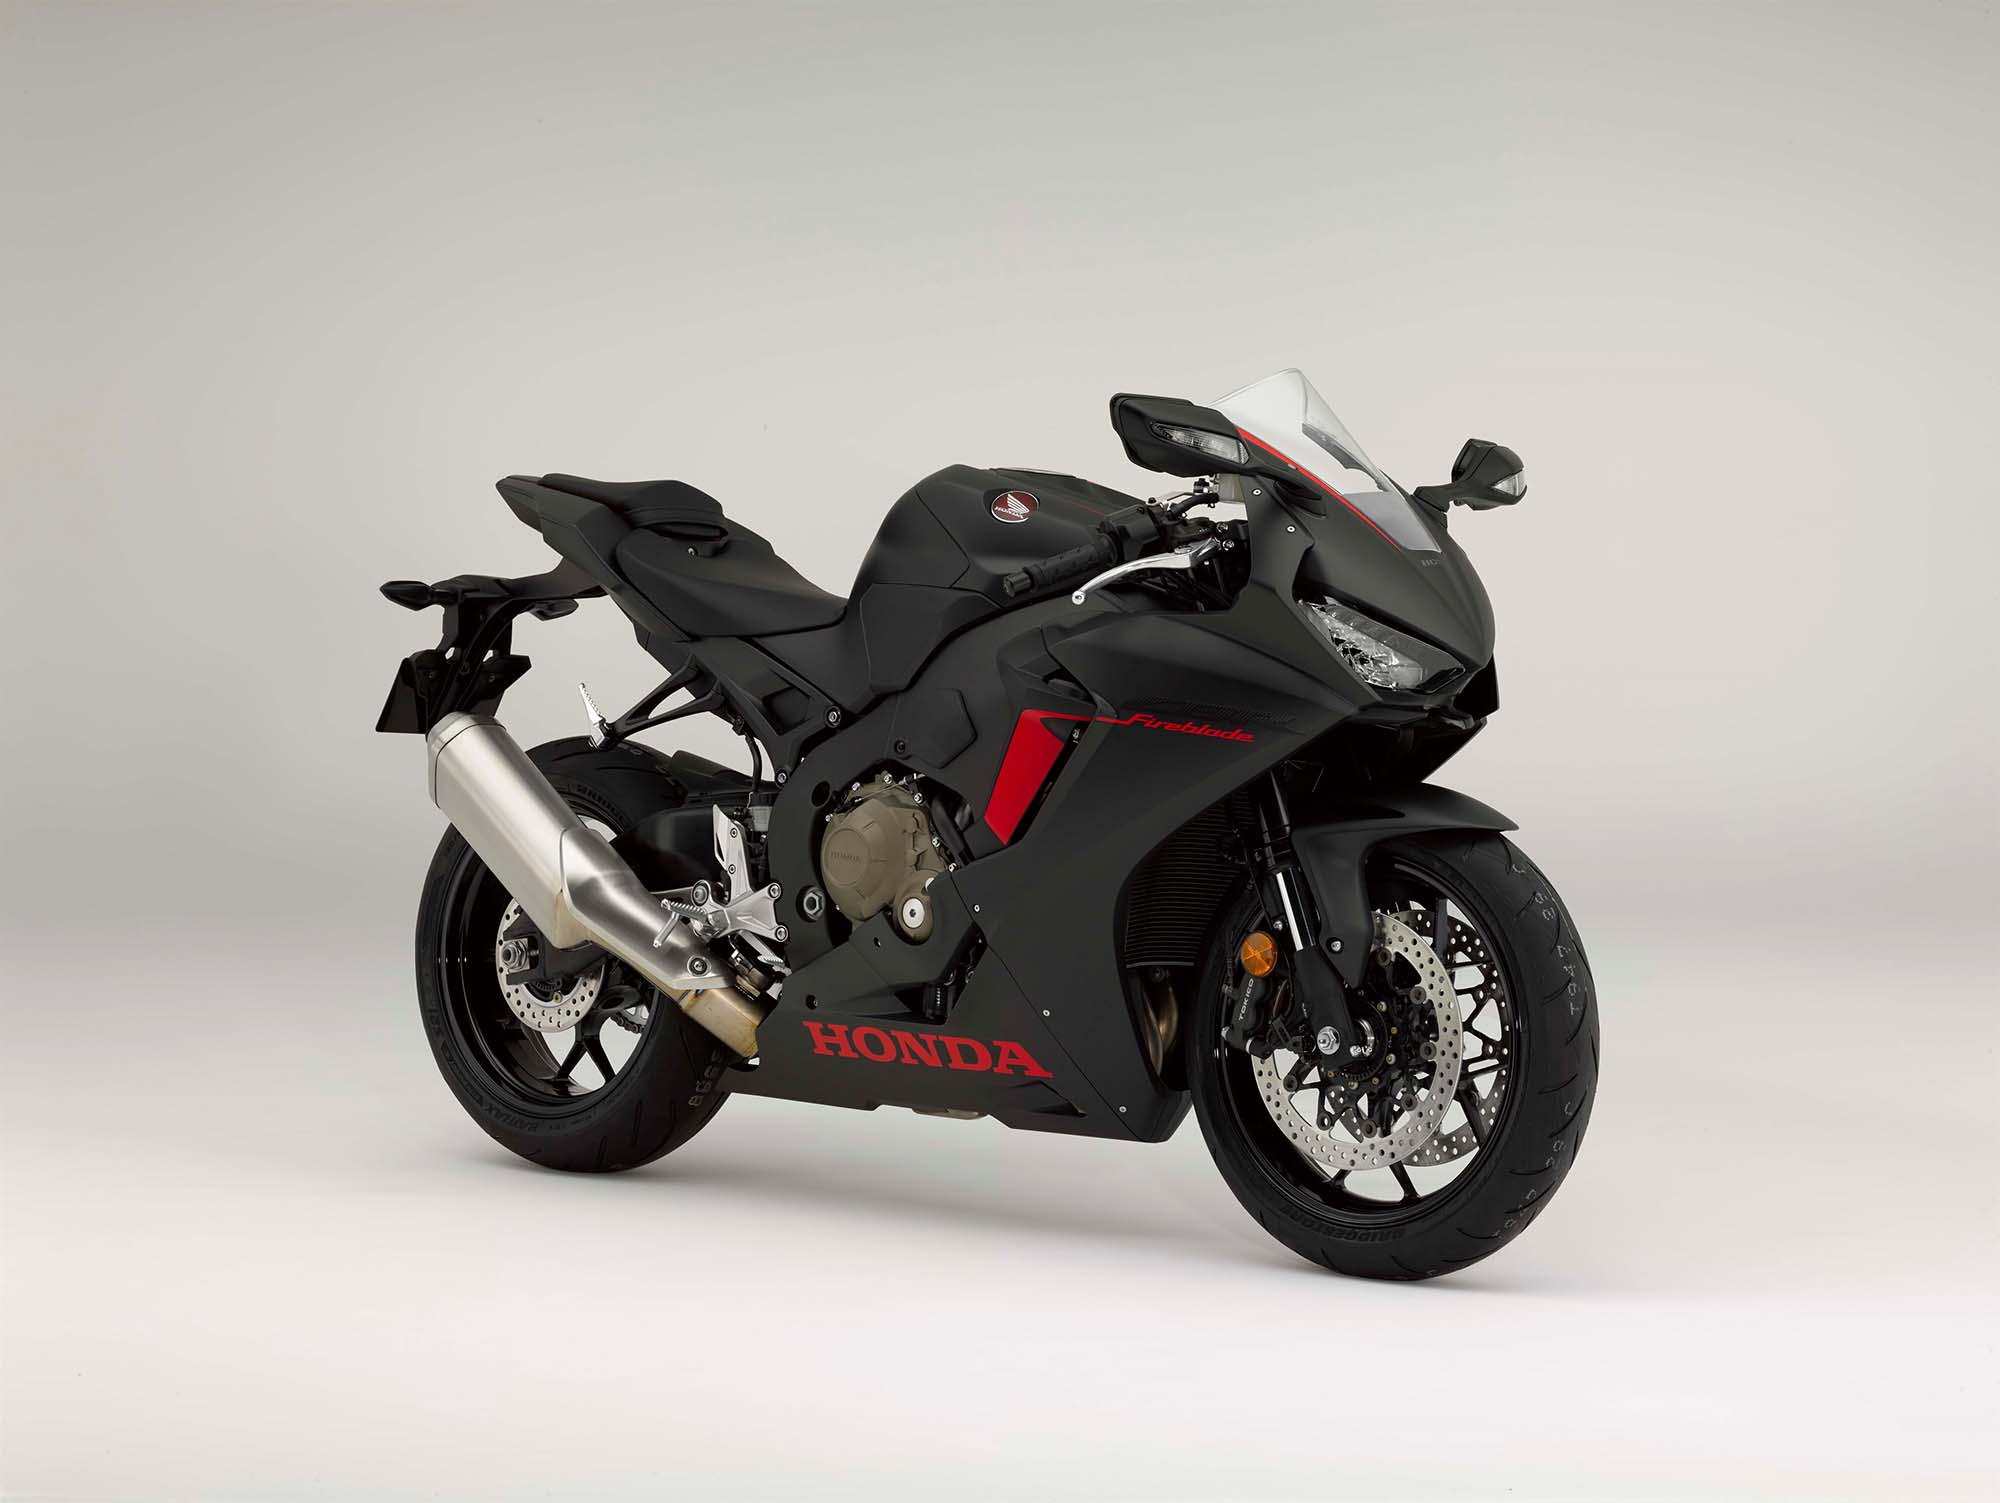 Bmw 1000rr price in bangalore dating 10